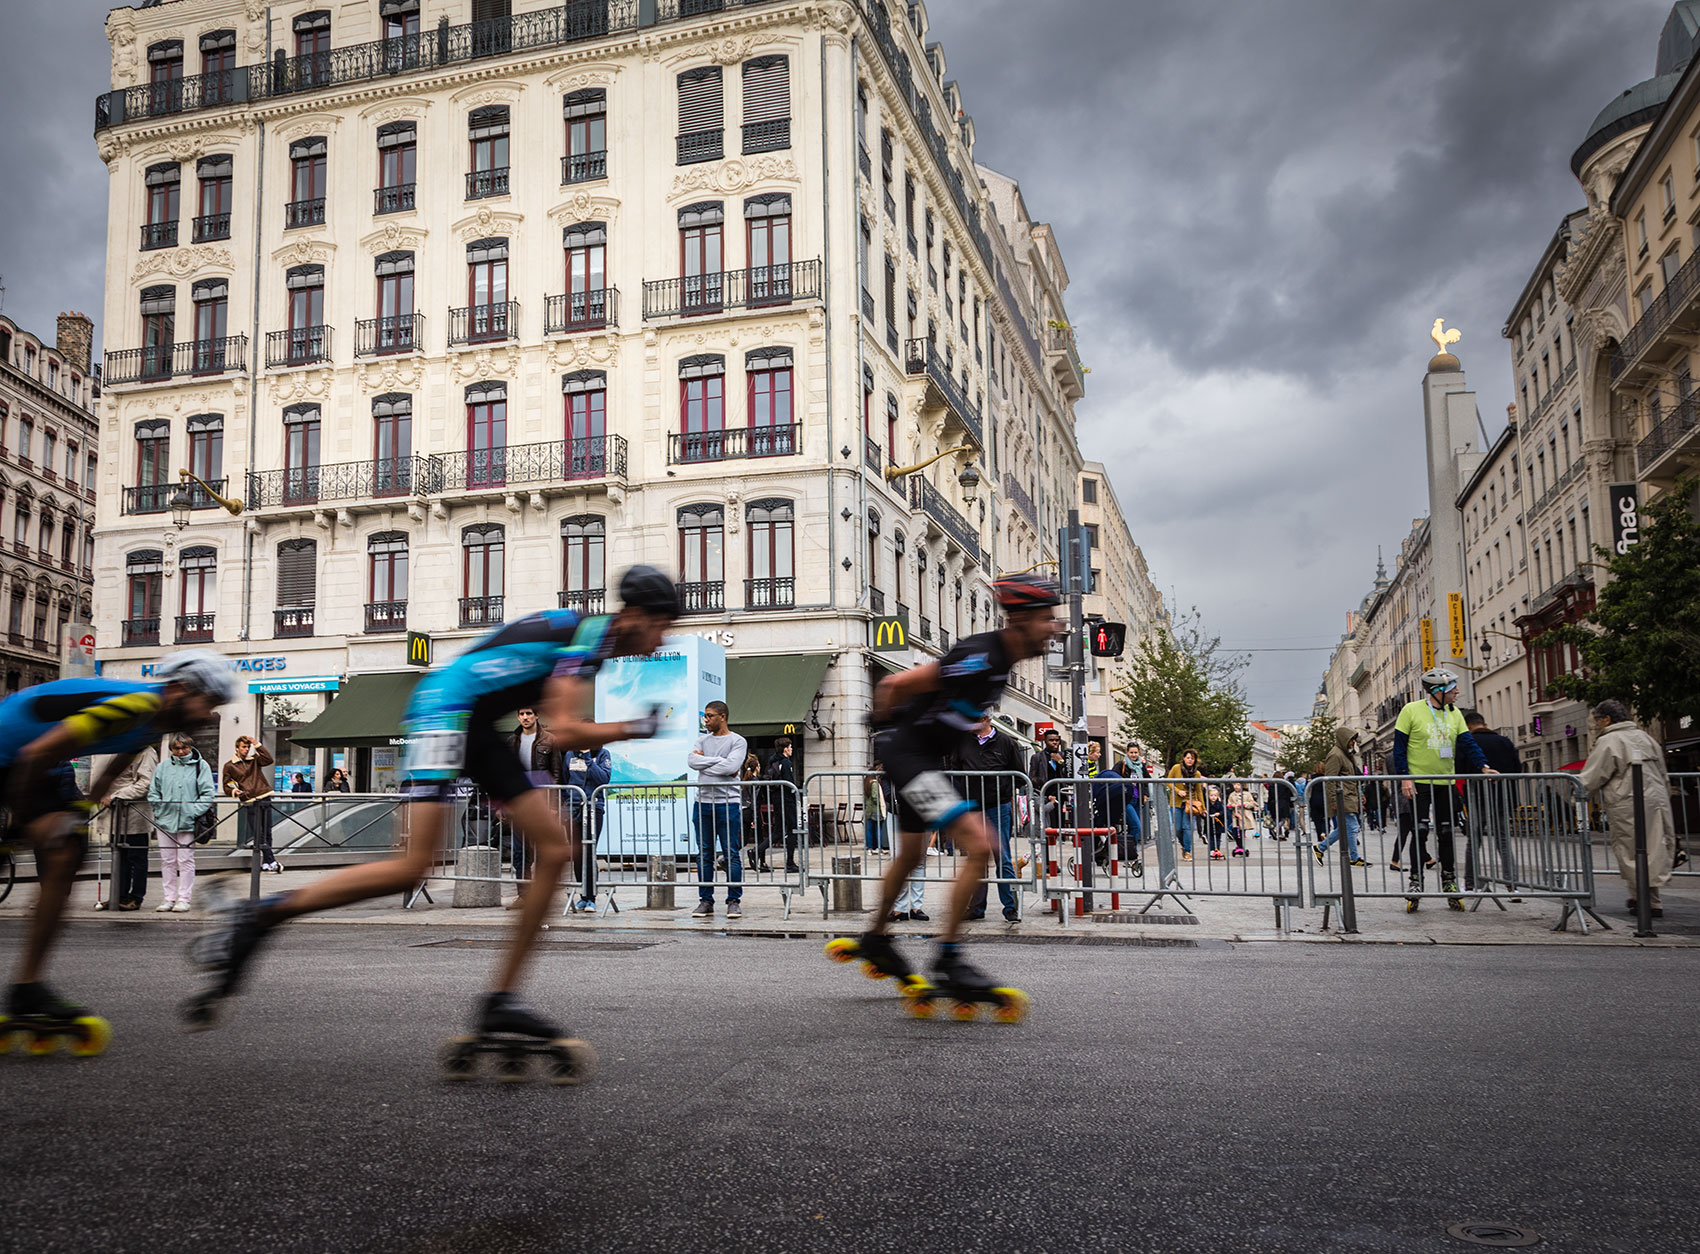 Walking in Lyon. A skate competition in the historical center